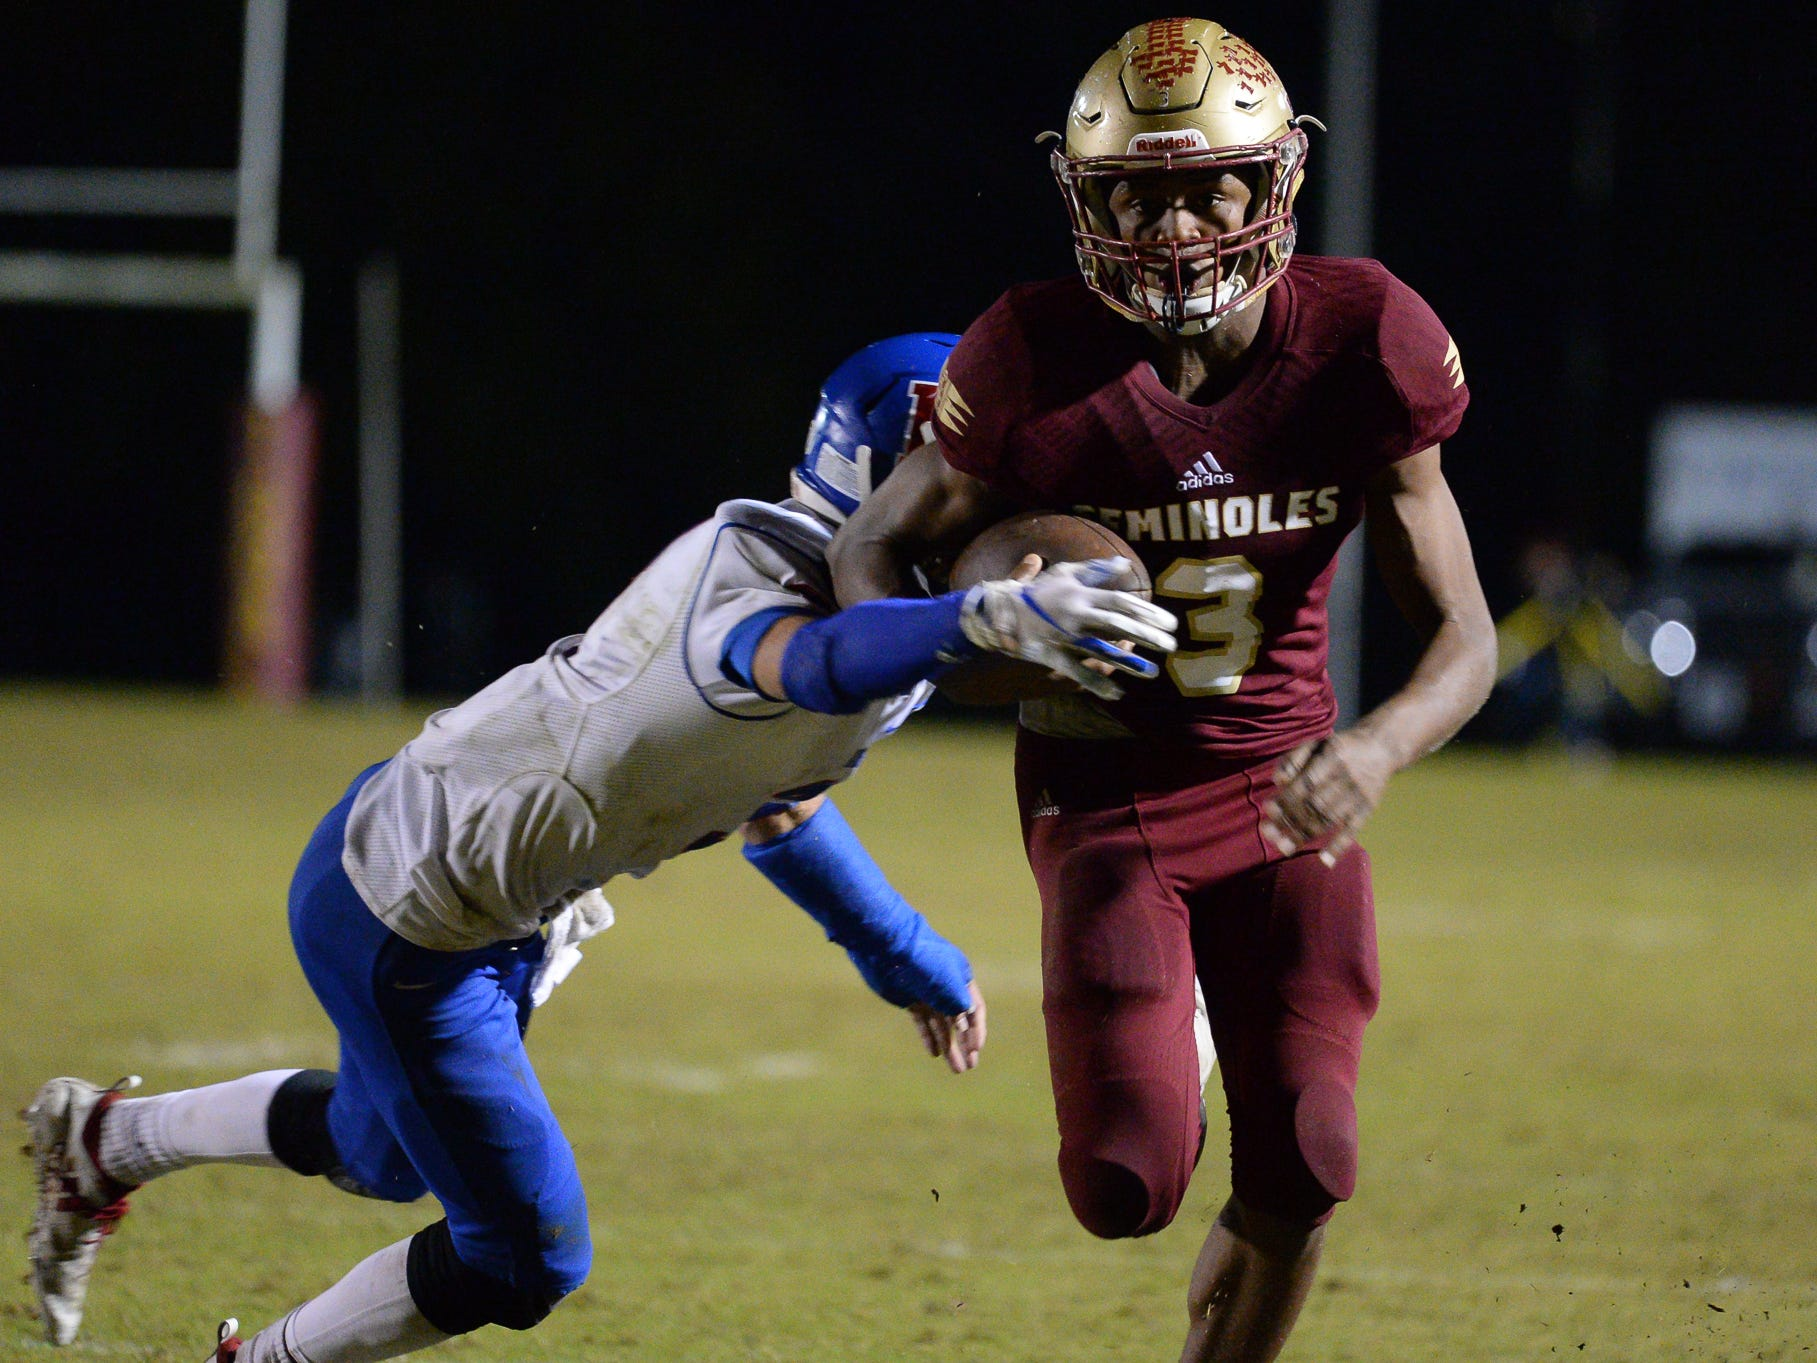 Florida High's Ahmari Harvey takes off upfield for a touchdown catch during the Seminoles' 49-48 loss to King's Academy in a Class 3A state semifinal.